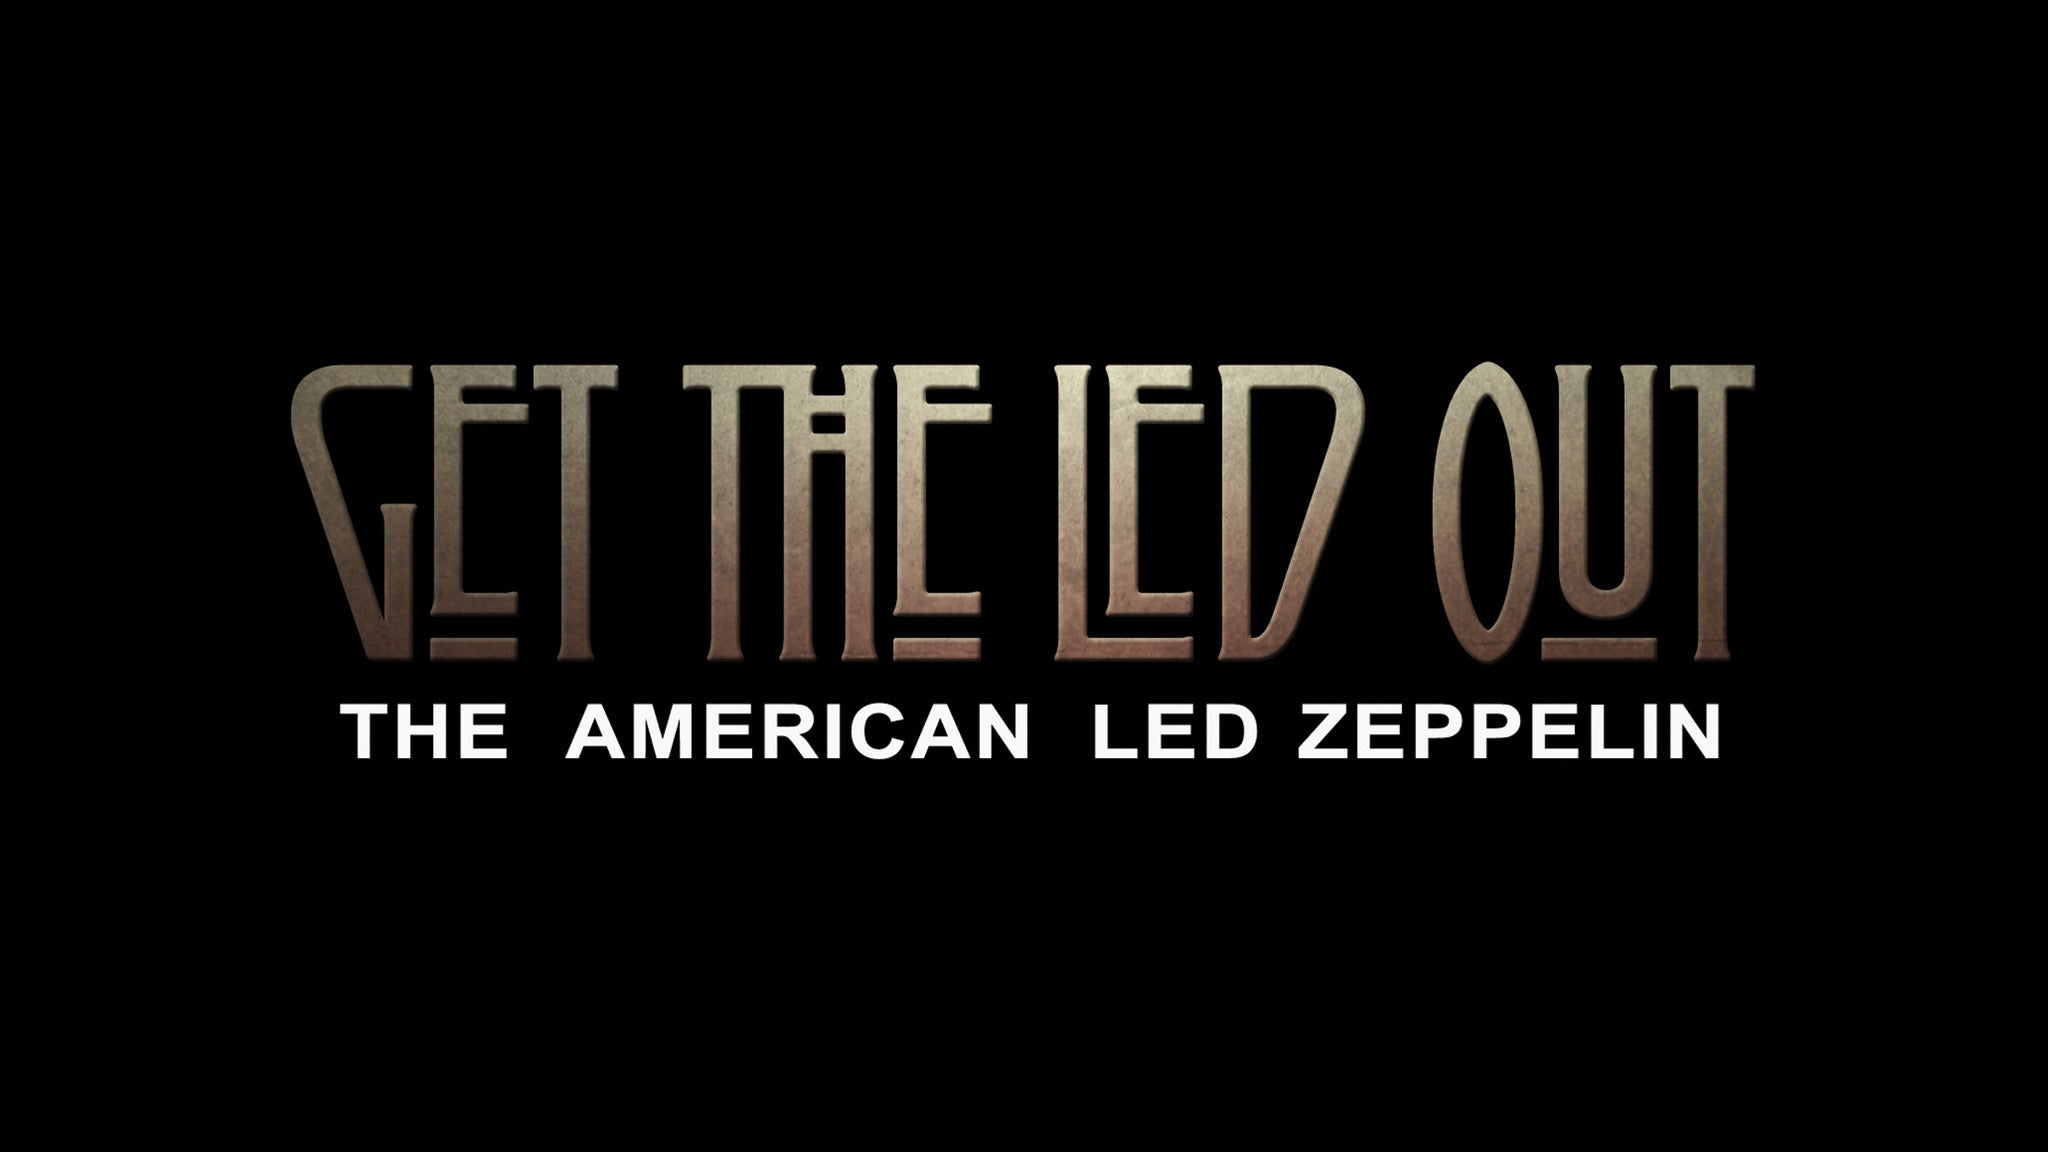 Get the Led Out at Chandler Center for the Arts